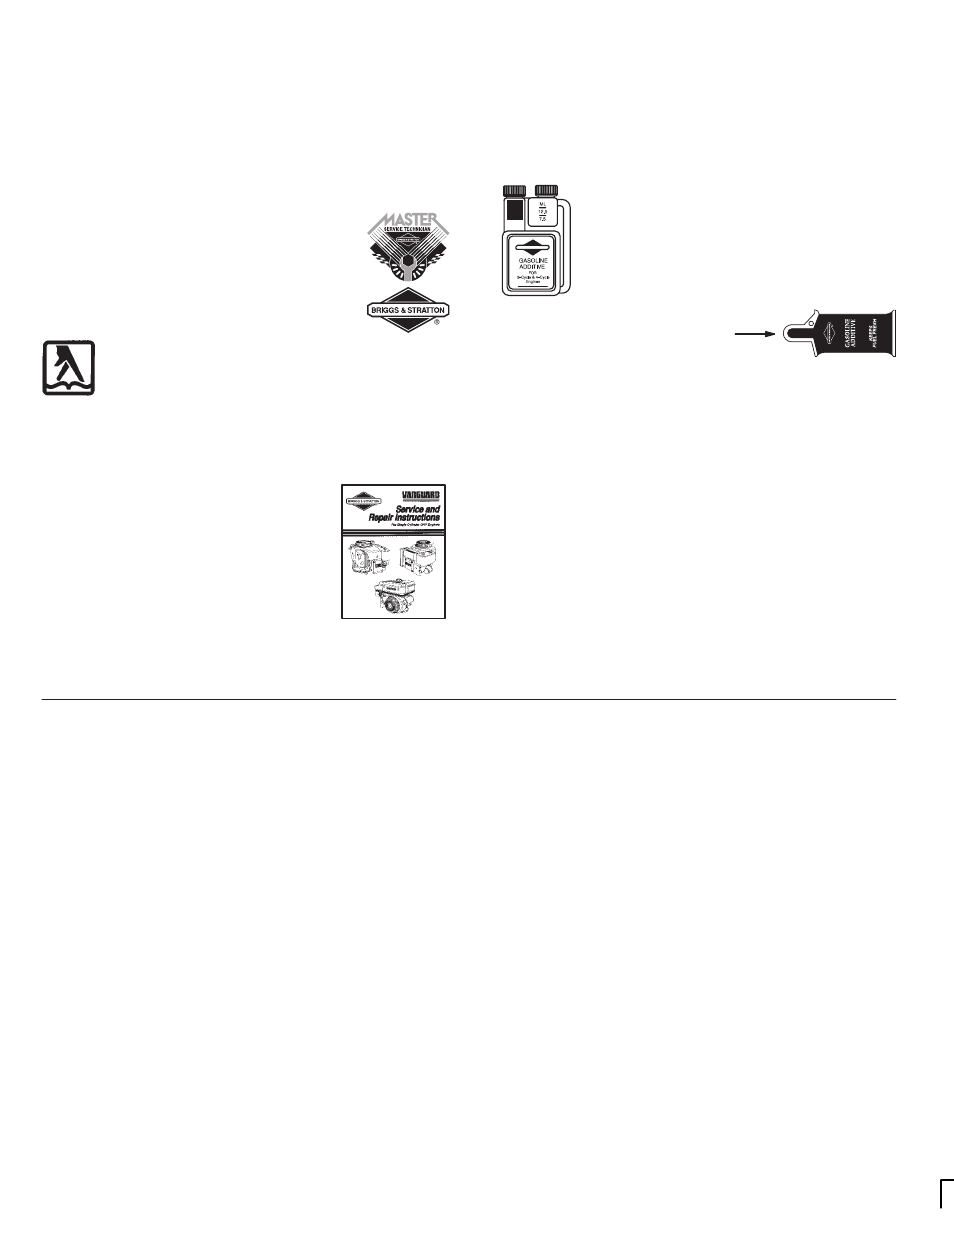 Briggs And Stratton 287700 Engine Service Manual Diagram Page 8